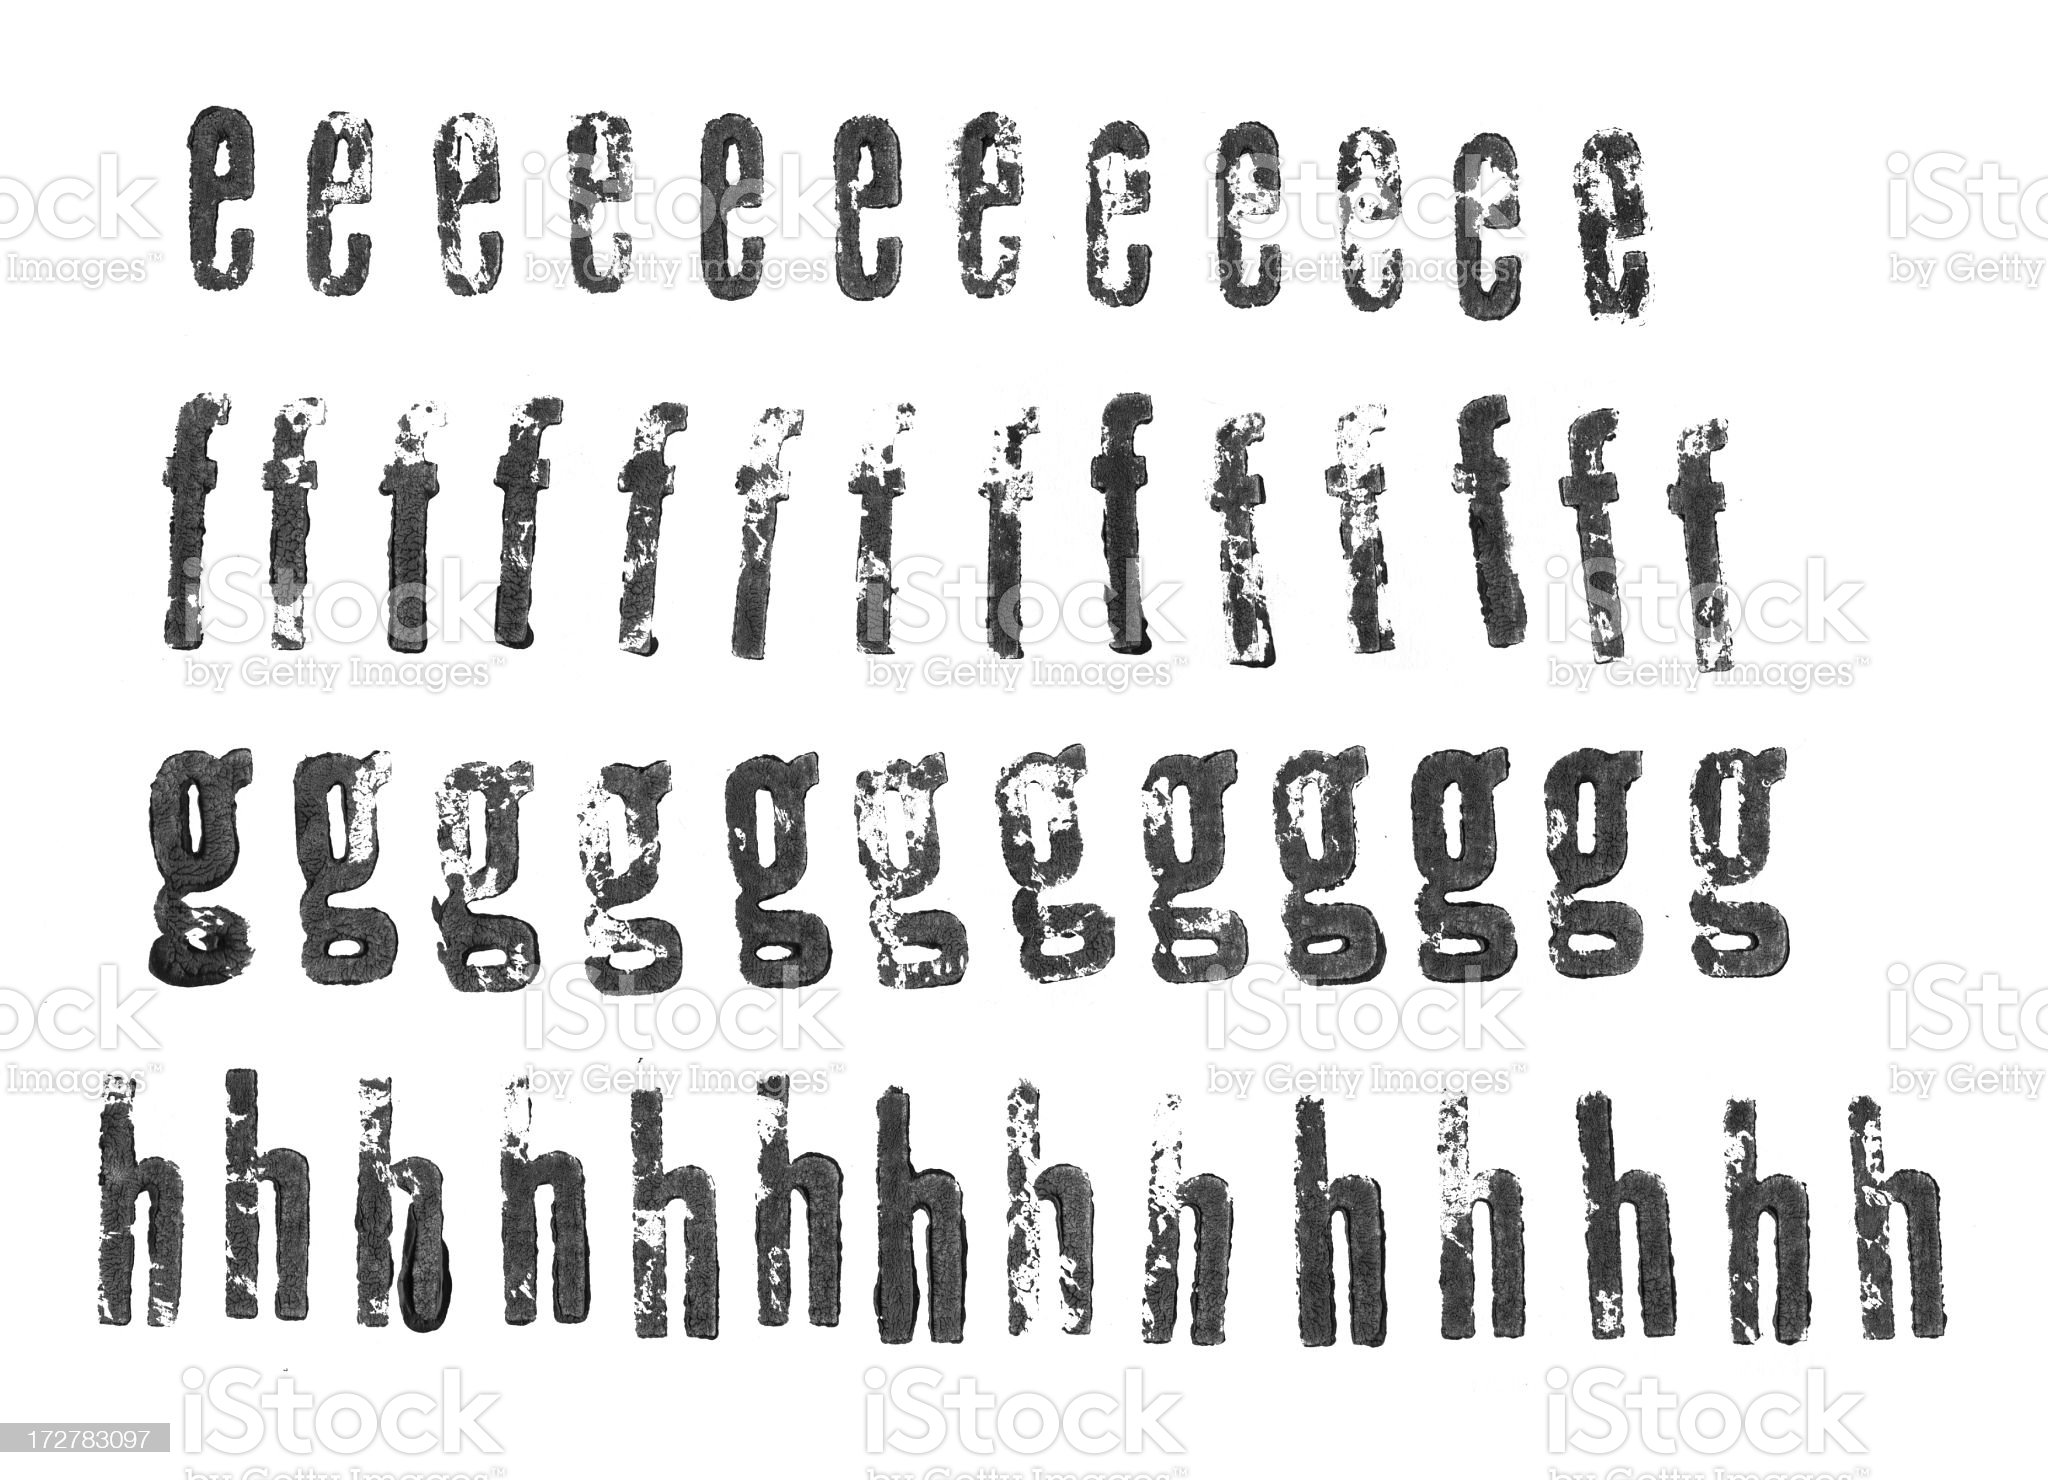 Letterpress lowercase alphabets - e to h royalty-free stock photo